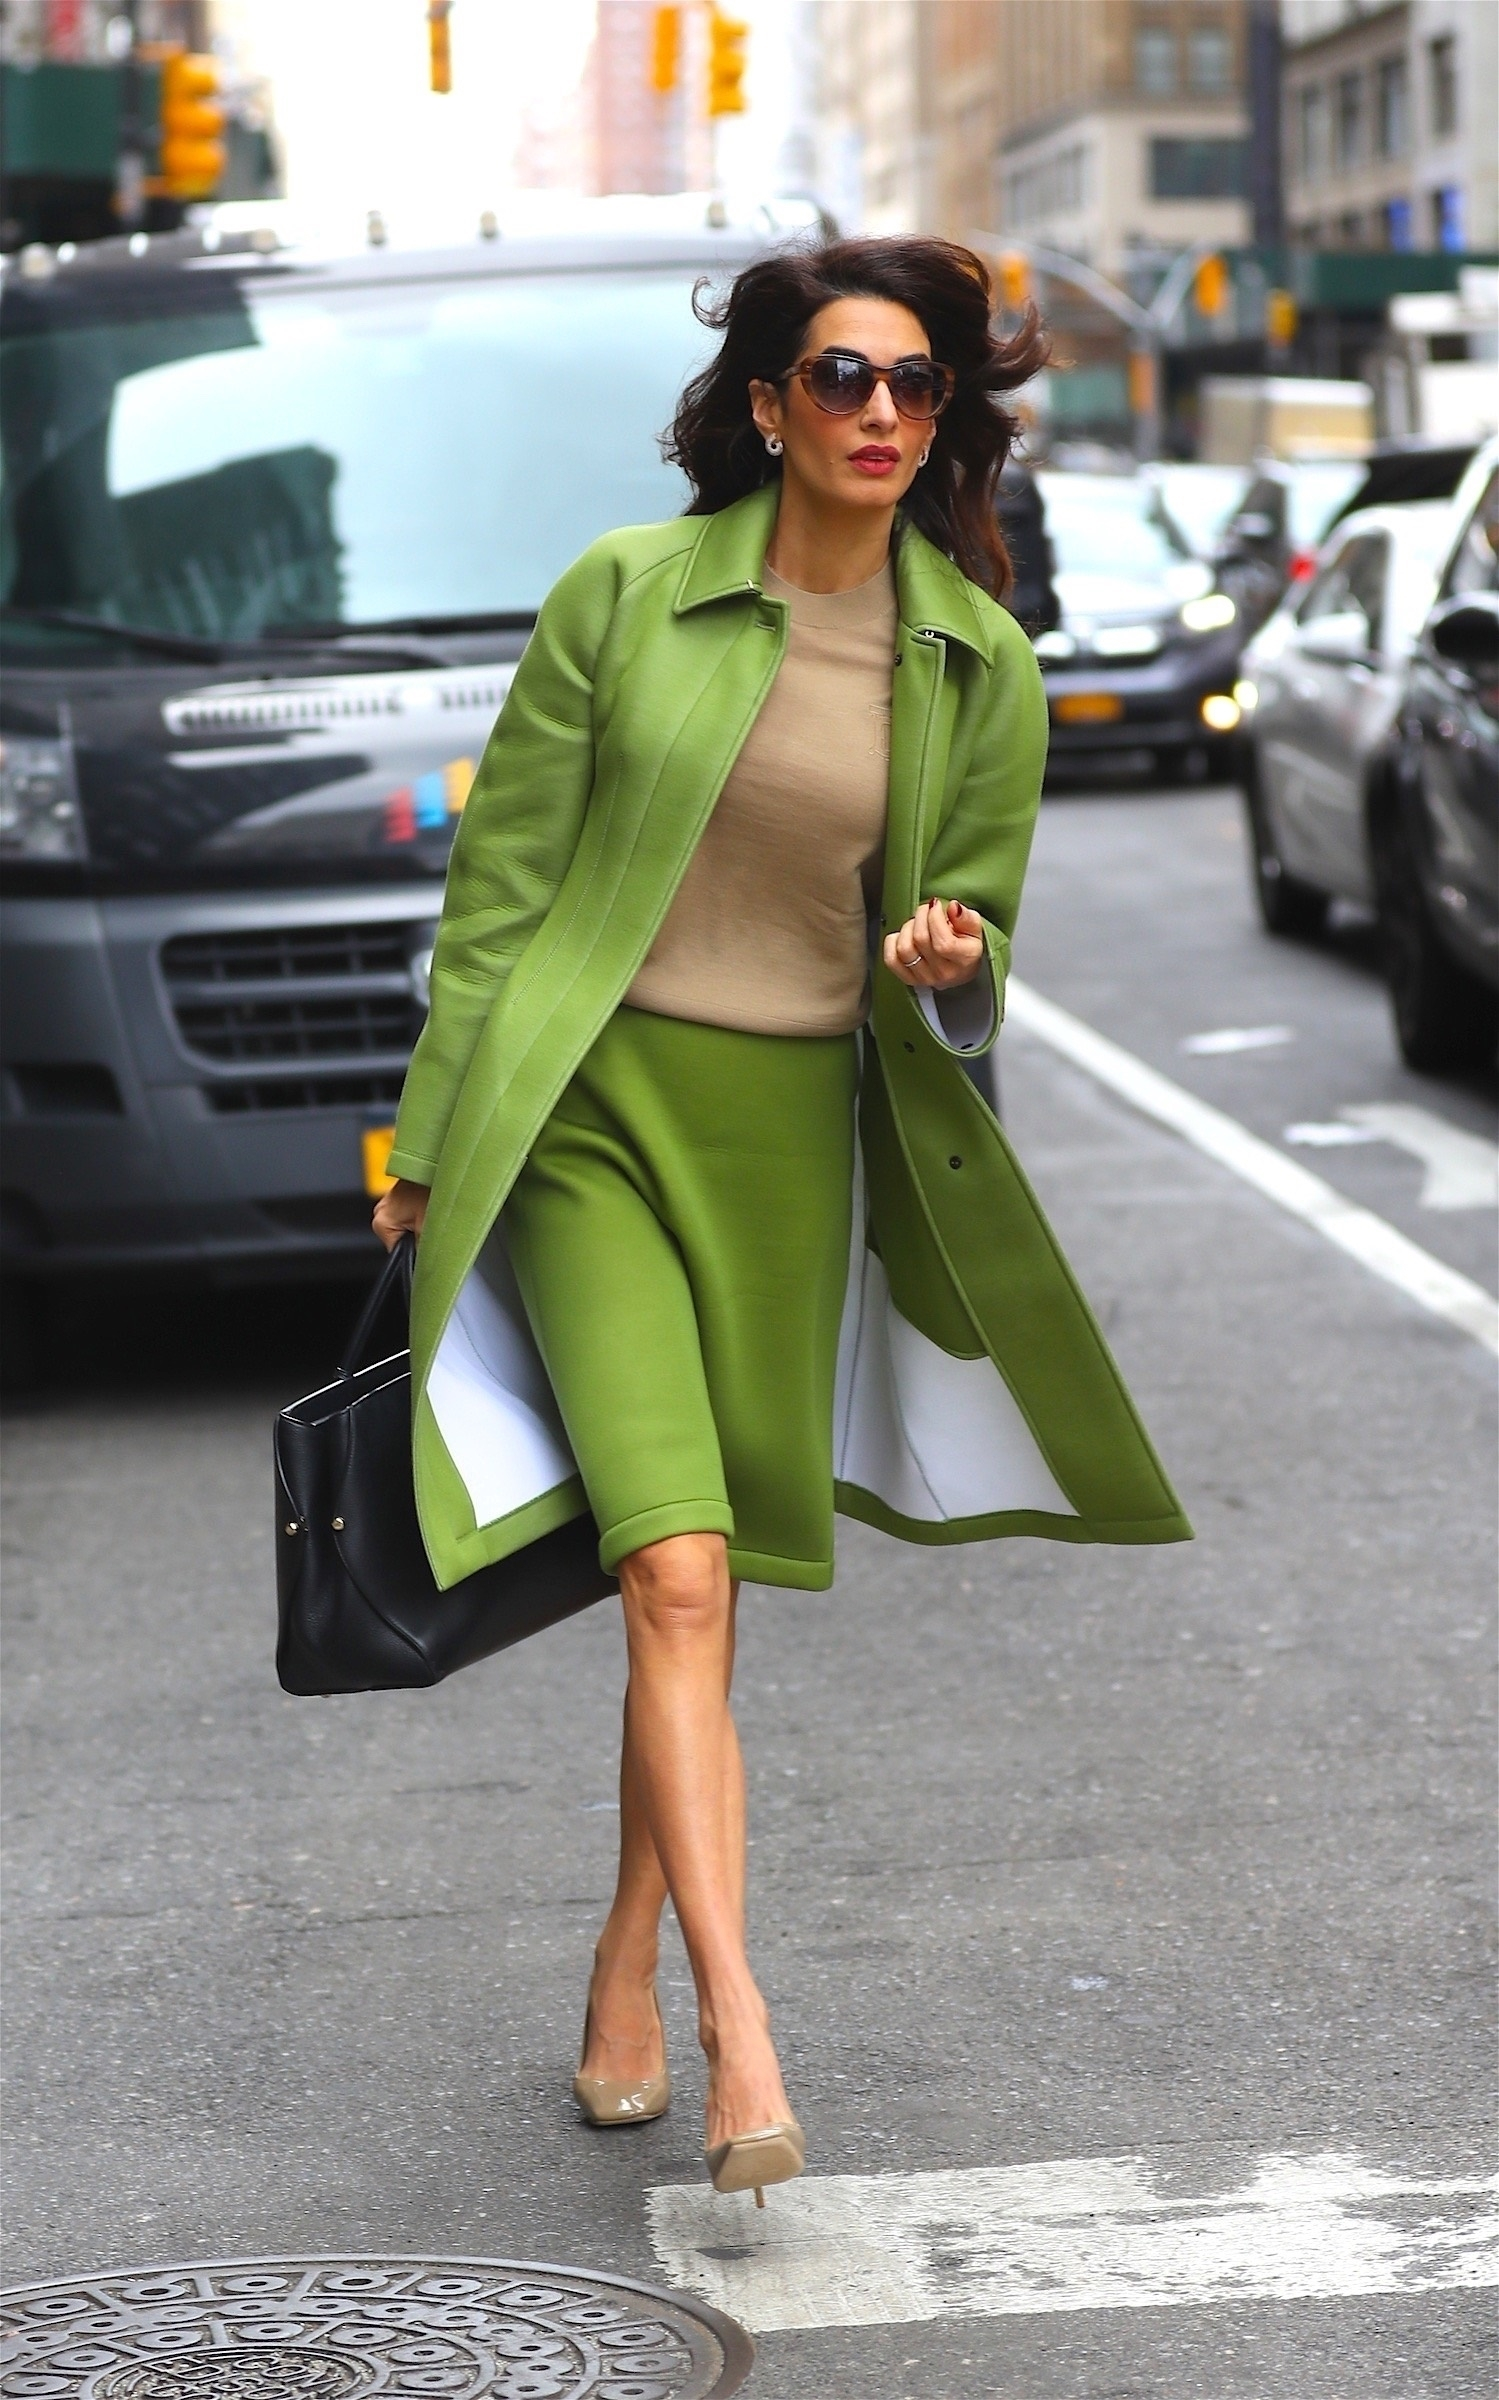 New York, NY - *EXCLUSIVE* - Amal Clooney means business as she treads the NYC streets like a boss for meetings this morning in green two-piece while in town for the United Nations General Assembly. Pictured: Amal Clooney BACKGRID USA 24 SEPTEMBER 2019 BYLINE MUST READ: BlayzenPhotos / BACKGRID USA: +1 310 798 9111 / usasales@backgrid.com UK: +44 208 344 2007 / uksales@backgrid.com *UK Clients - Pictures Containing Children Please Pixelate Face Prior To Publication*